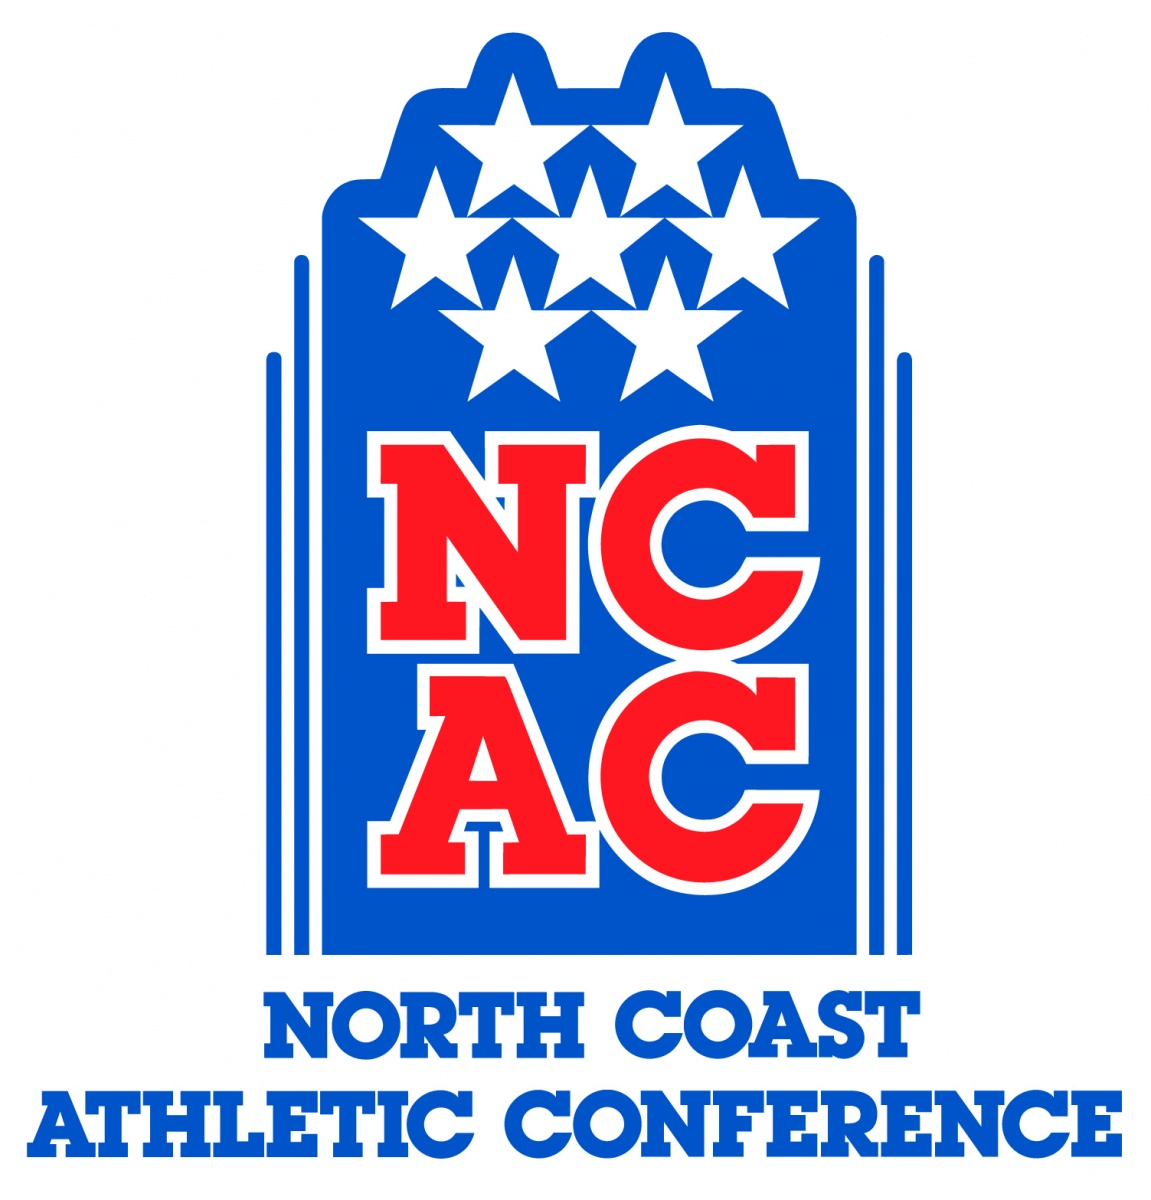 North Coast Athletic Conference